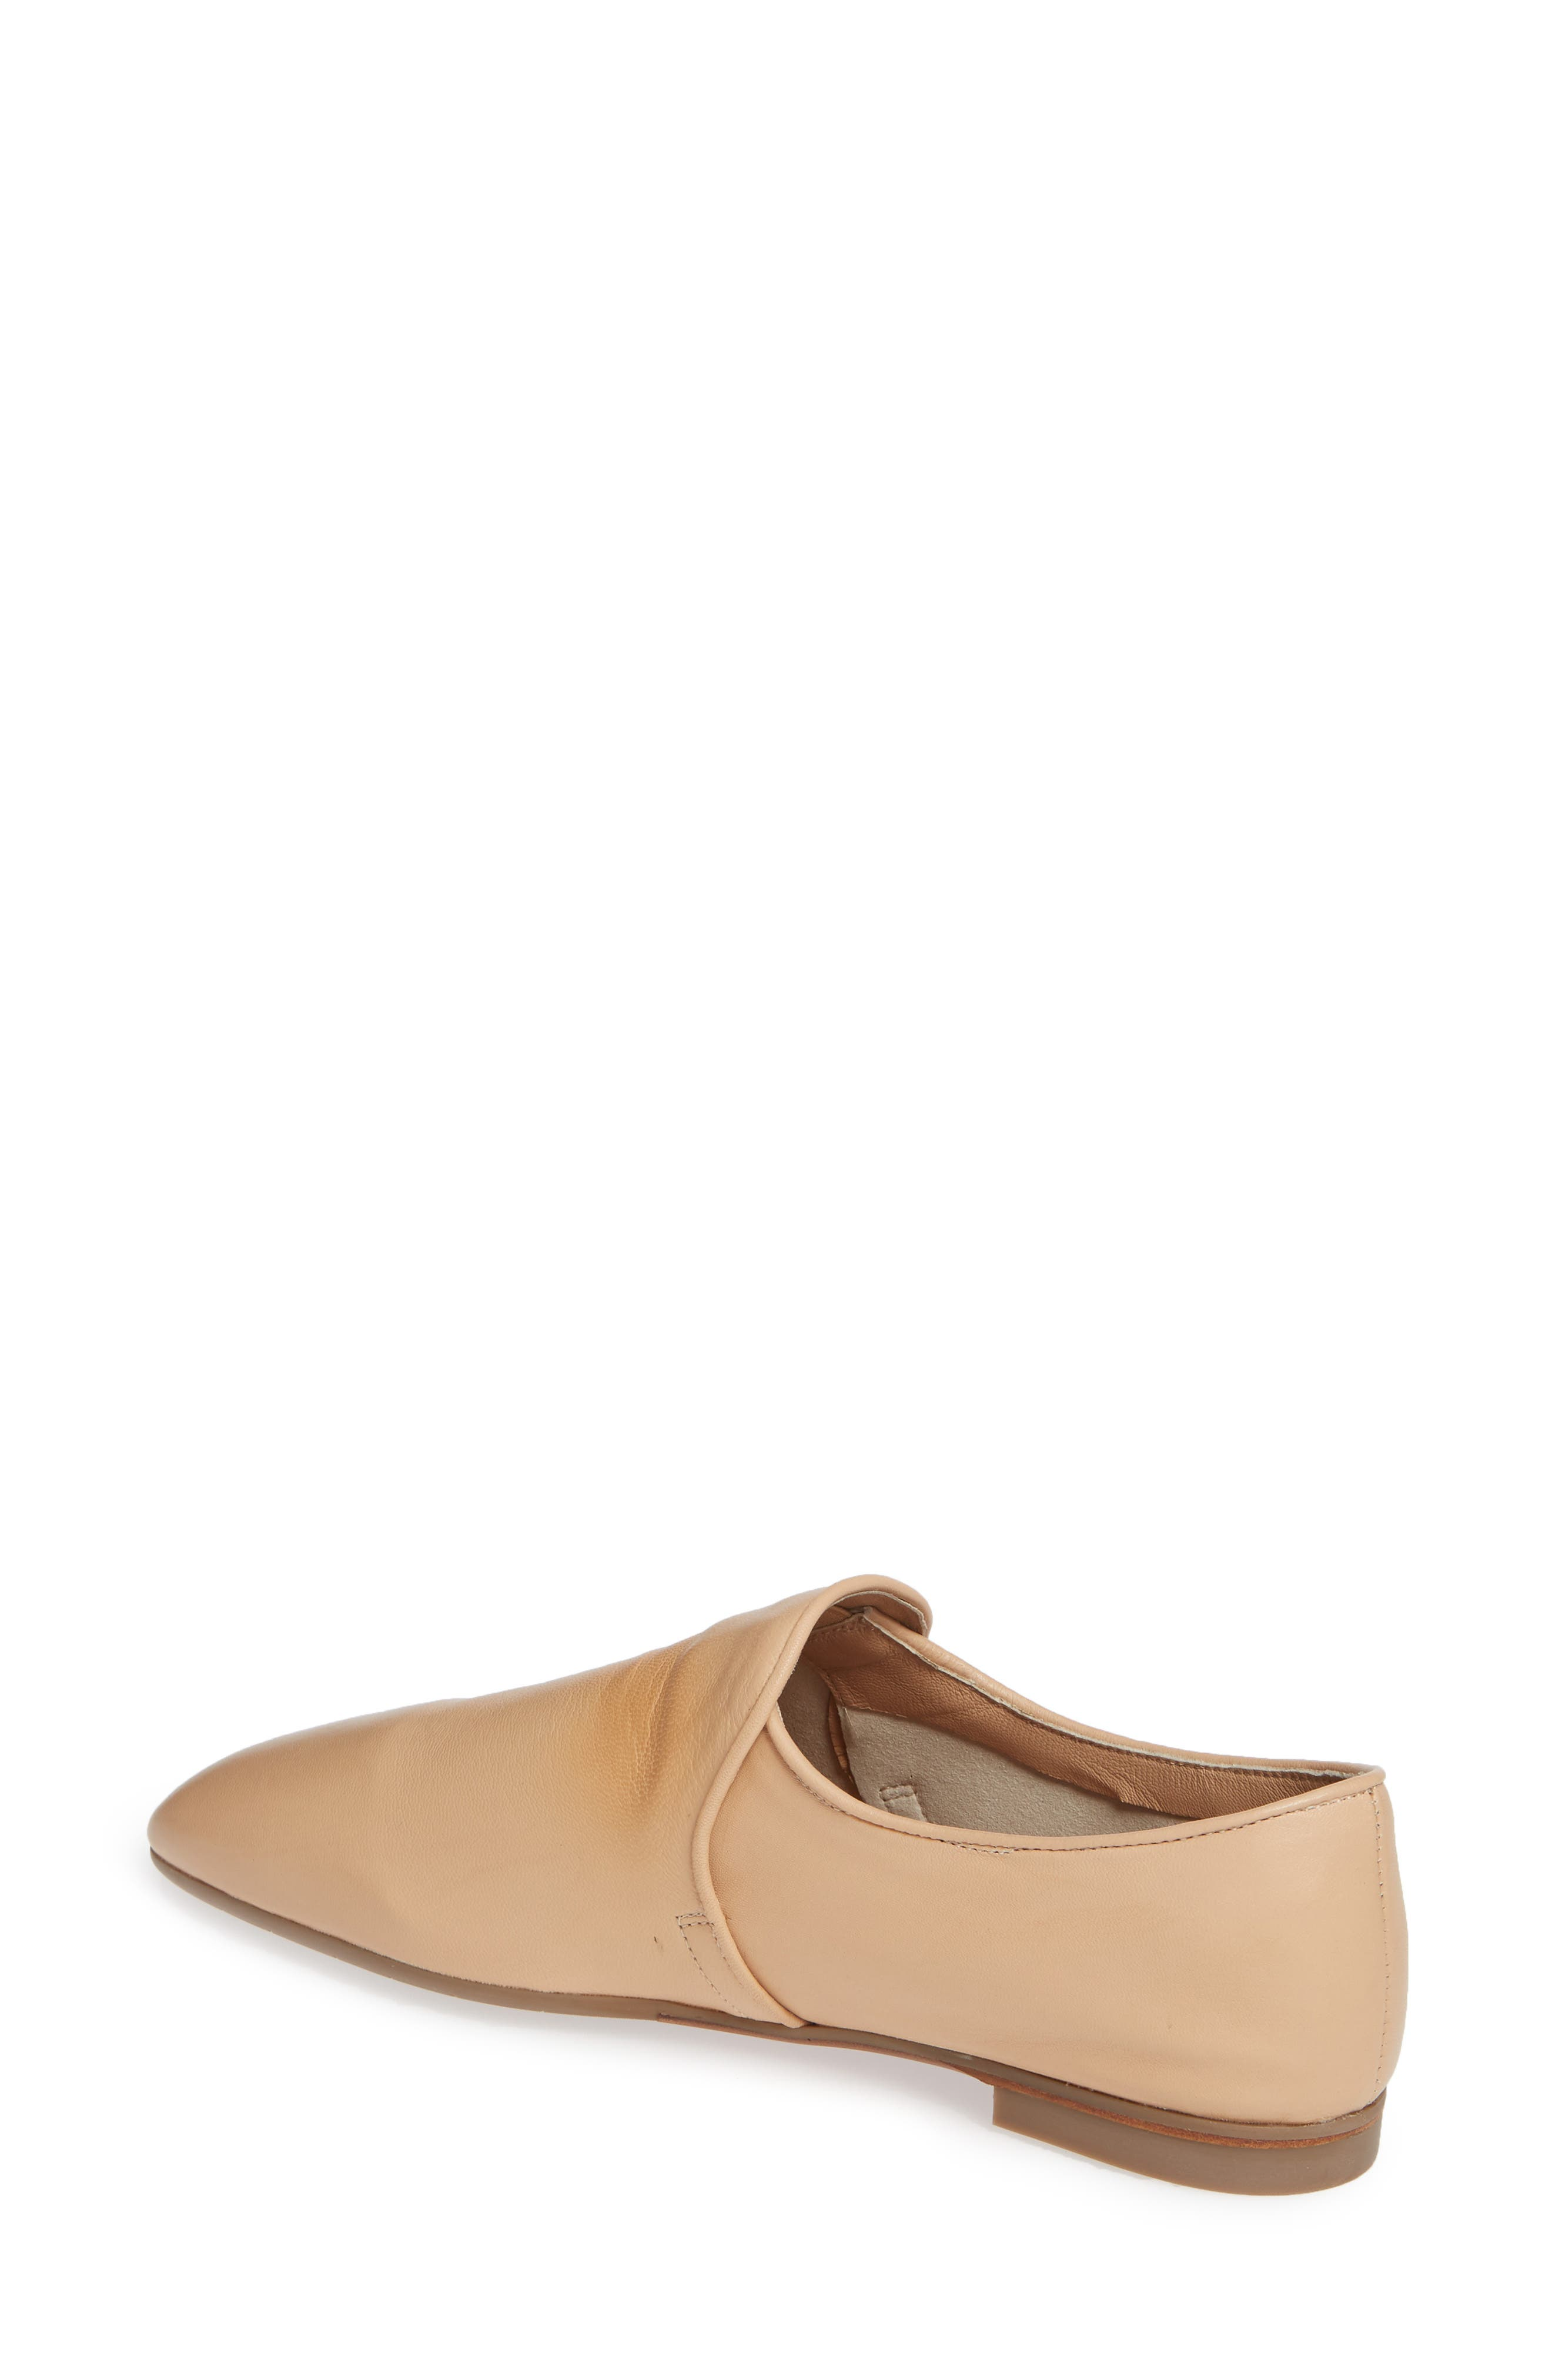 AQUATALIA, Revy Weatherporoof Loafer, Alternate thumbnail 2, color, NUDE NAPPA